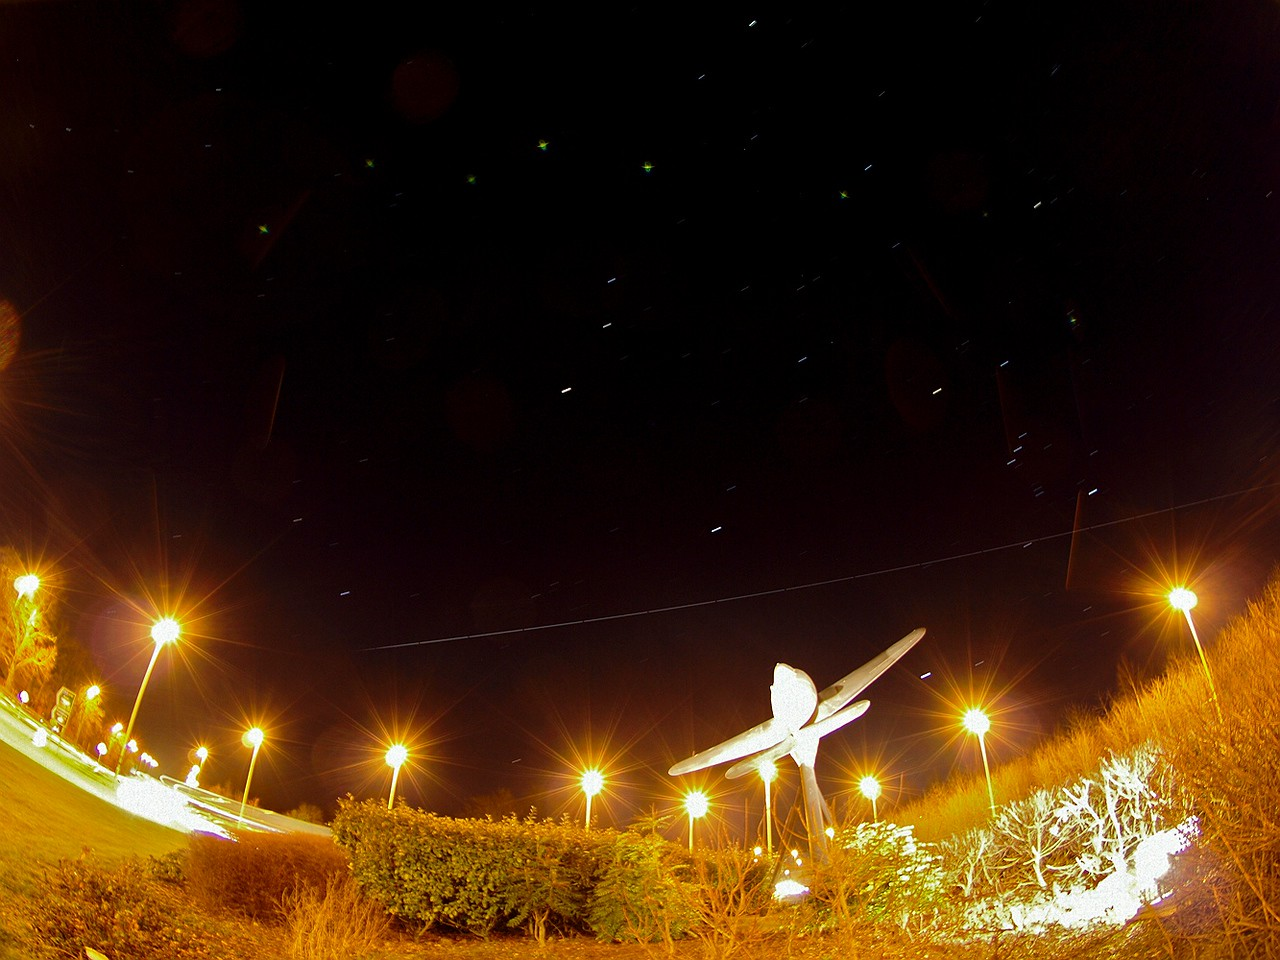 The modern day ISS flies over the Whittle memorial (Jet engine) in Lutterworth, Leics. I wonder what Sir Frank Whittle, inventor of the Jet engine, would make of the current day flight technology. Amazed no doubt. A nice touch of the old vs new. Captured with Olympus E3 and 8mm fisheye. 4 min exposure total captured in 10s increments and stacked.